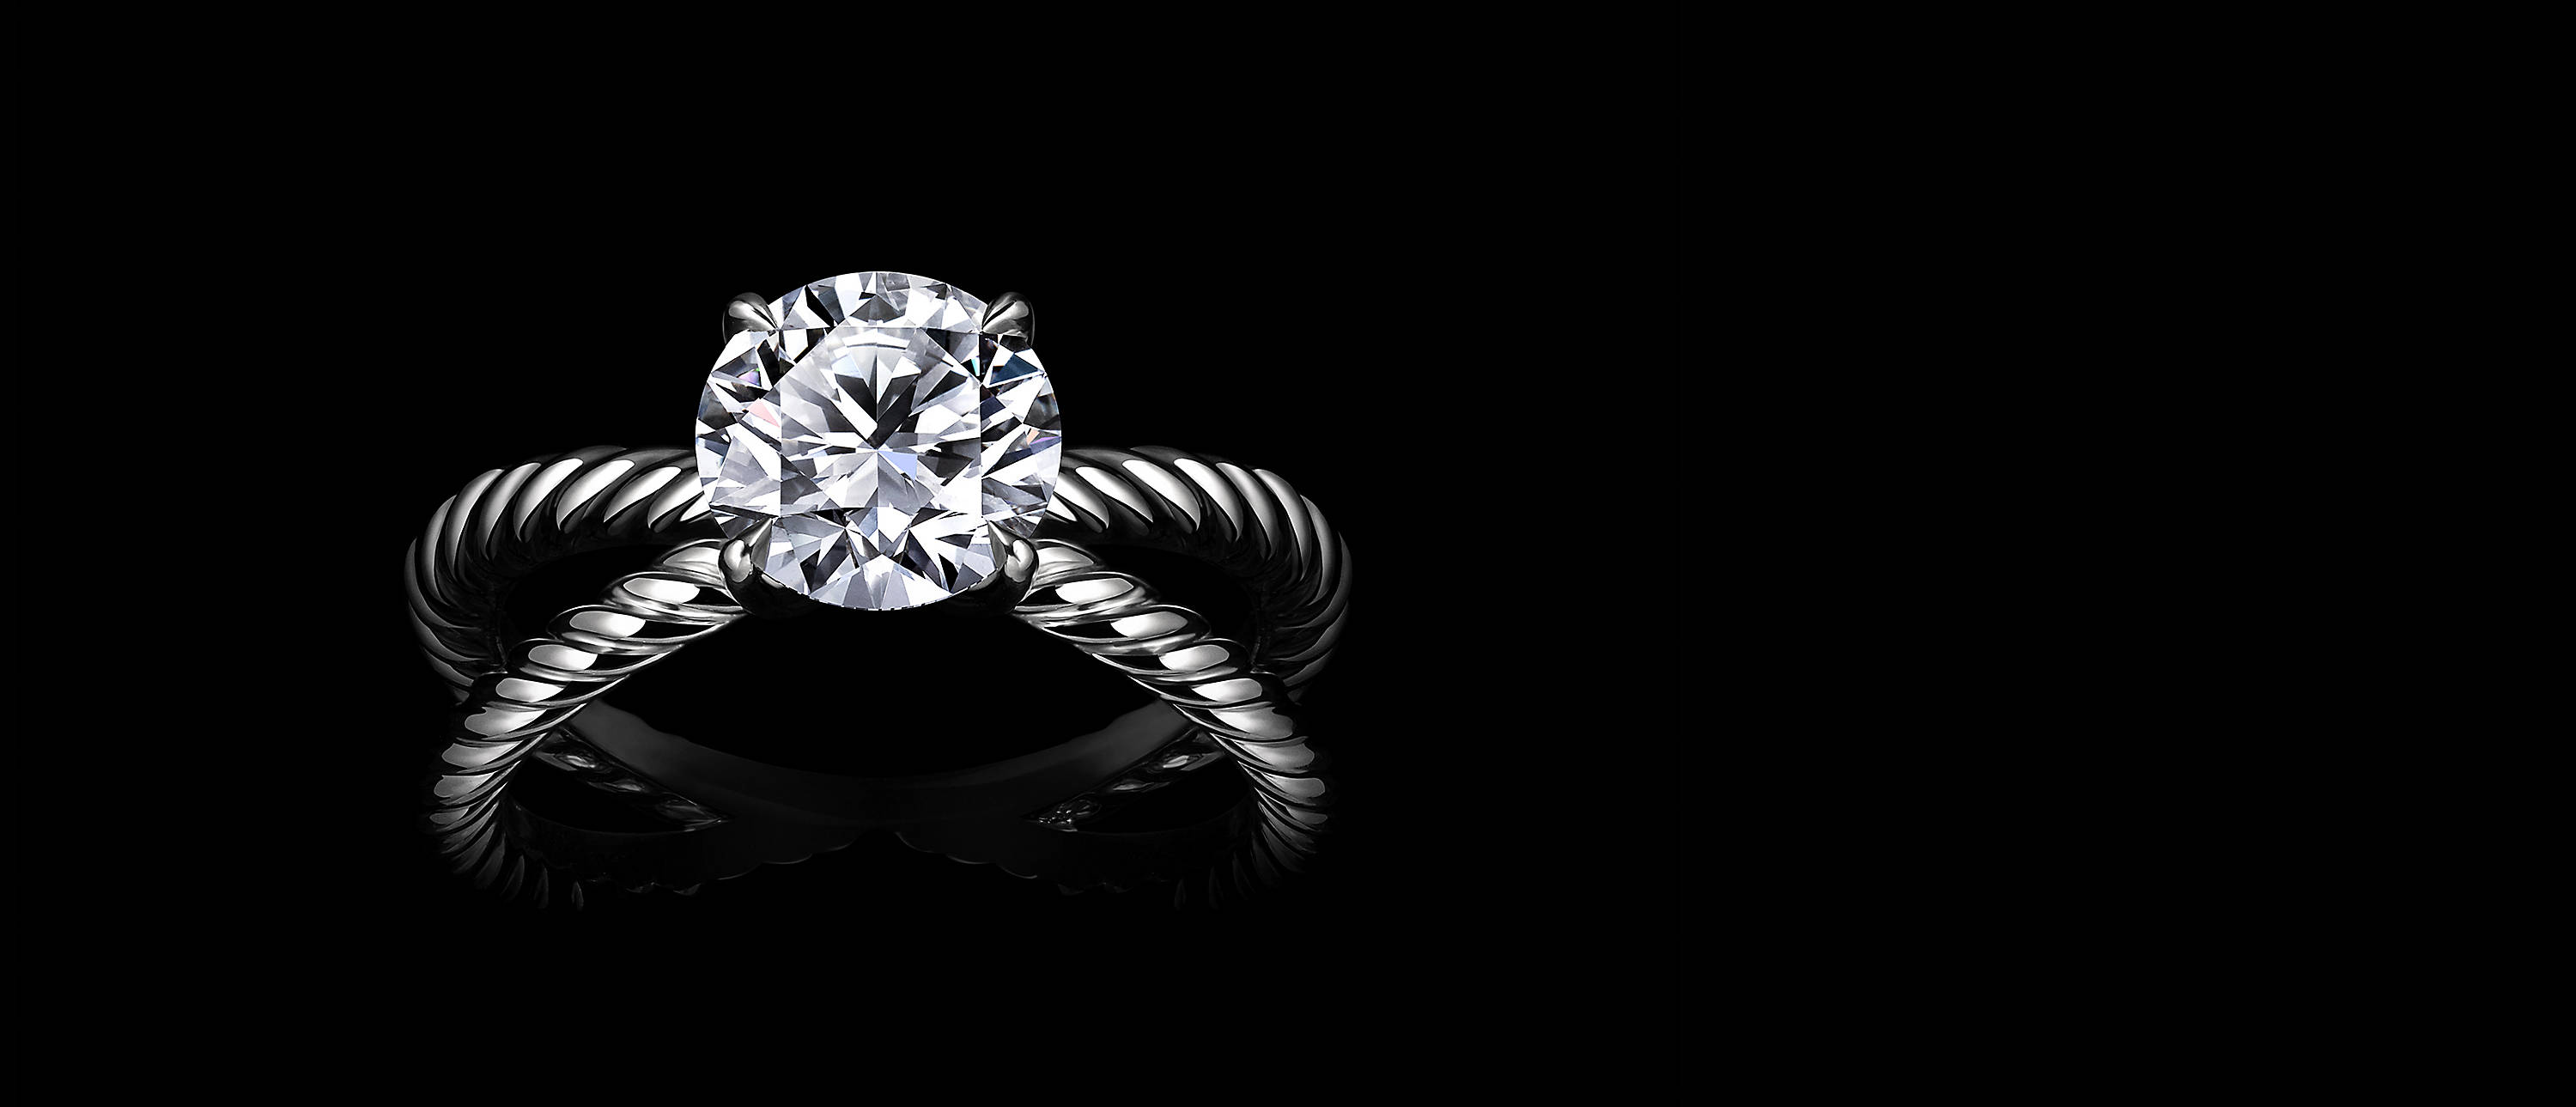 Shot against black, a DY Crossover® engagement ring with a round brilliant center diamond at the center of two intersecting platinum Cable bands.